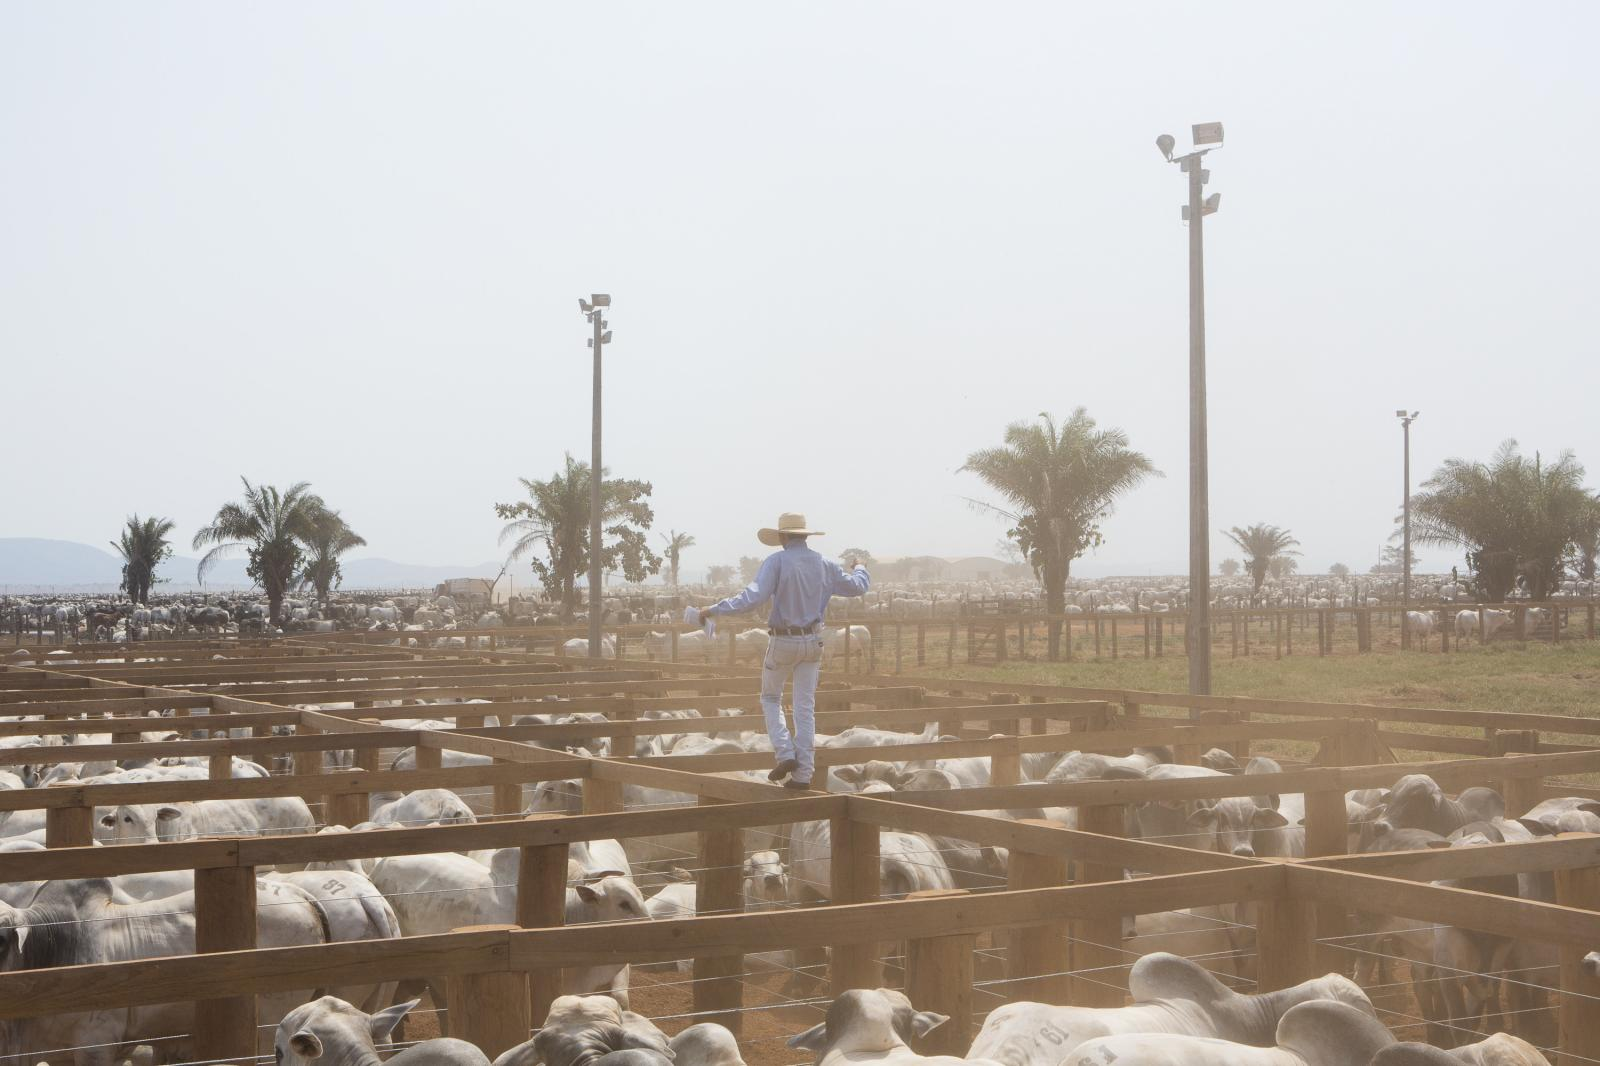 A cowboy balances between the corral fences. Belonging to the family group Rofrigues da Cunha, this farm has about 30 thousand animals. Brazil has a herd of 210 million head of cattle, which means one animal per person. In 2019, with the arrival of China among the Brazilian beef consuming countries, there was a lack of sufficient herd for slaughter. The perspective among farmers is to double their production in the coming years.